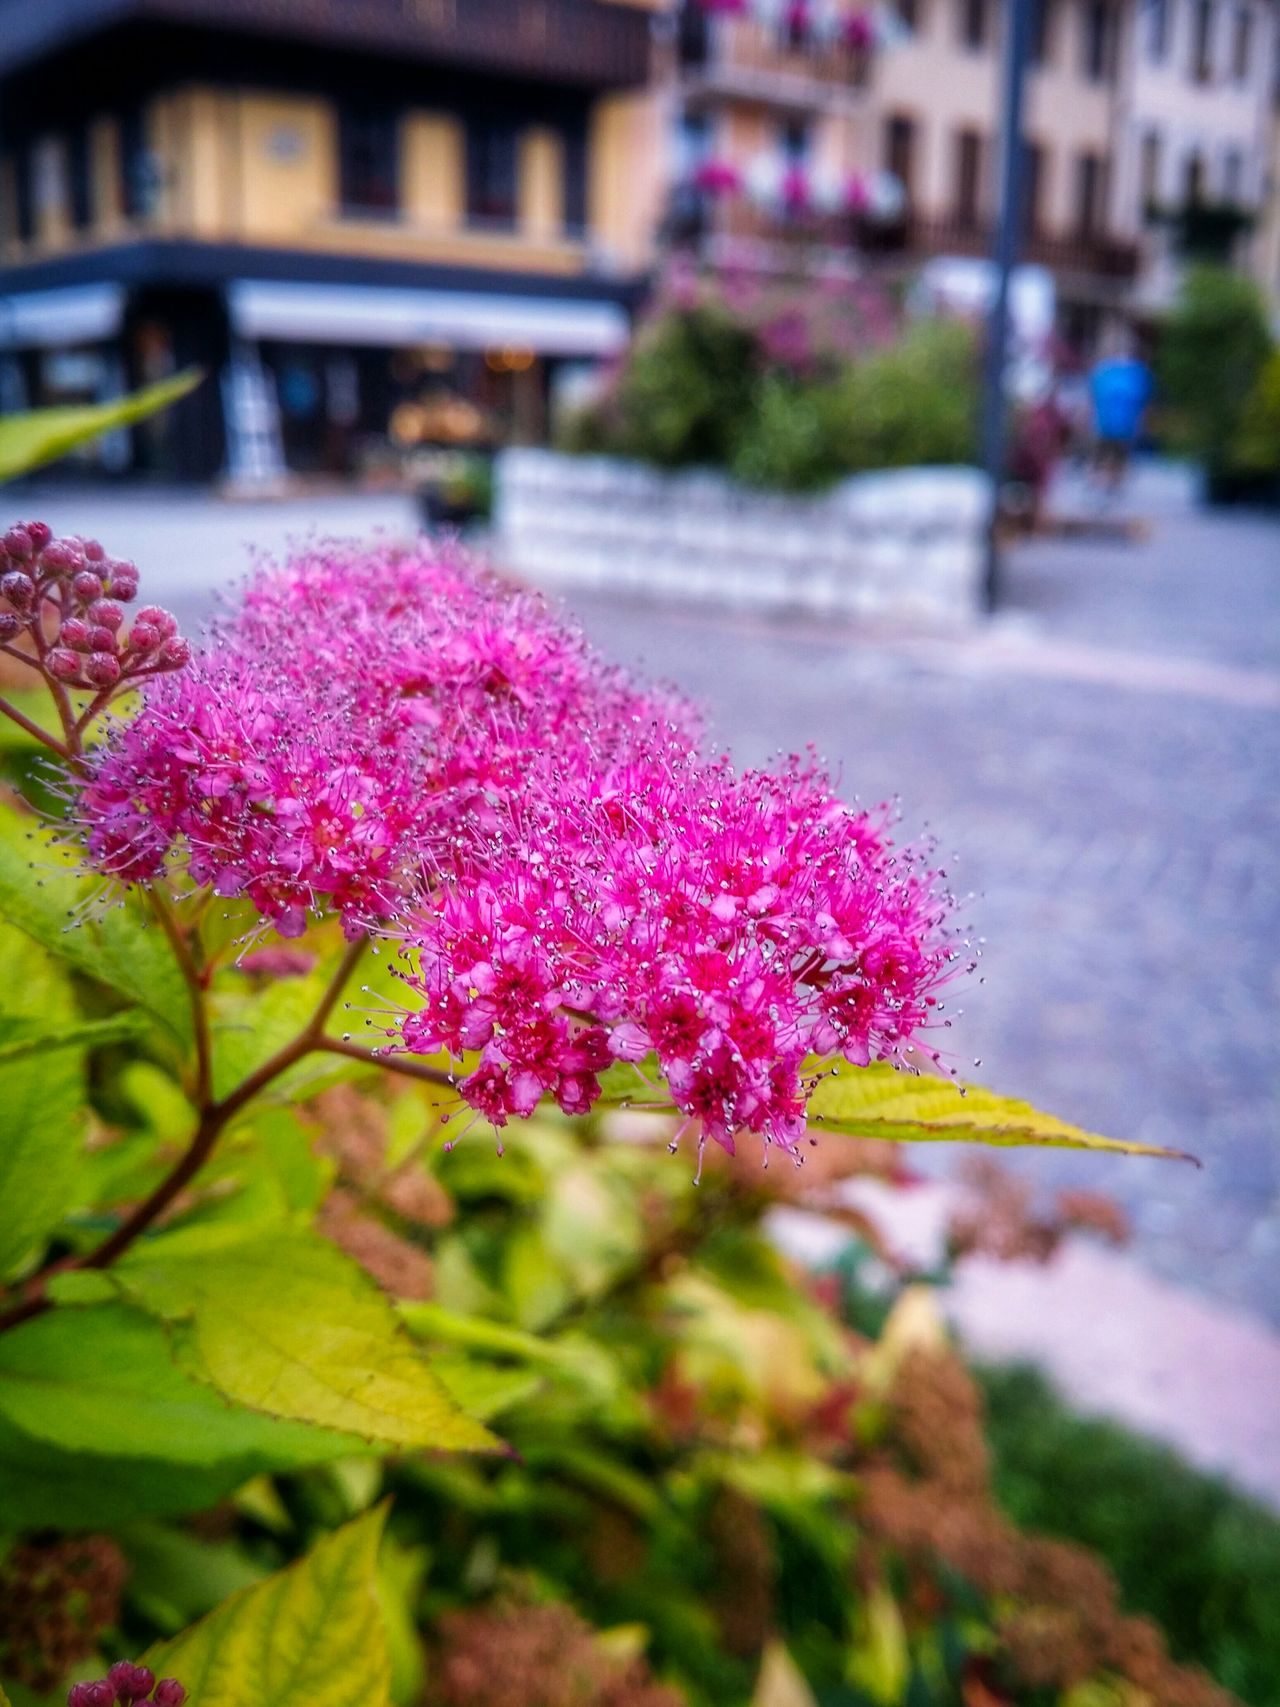 Asiago Vicenza Veneto Italy Travel Photography Travel Voyage Traveling Mobile Photography Fine Art Photography Close-up Flowers Flower Patterns Selective Focus